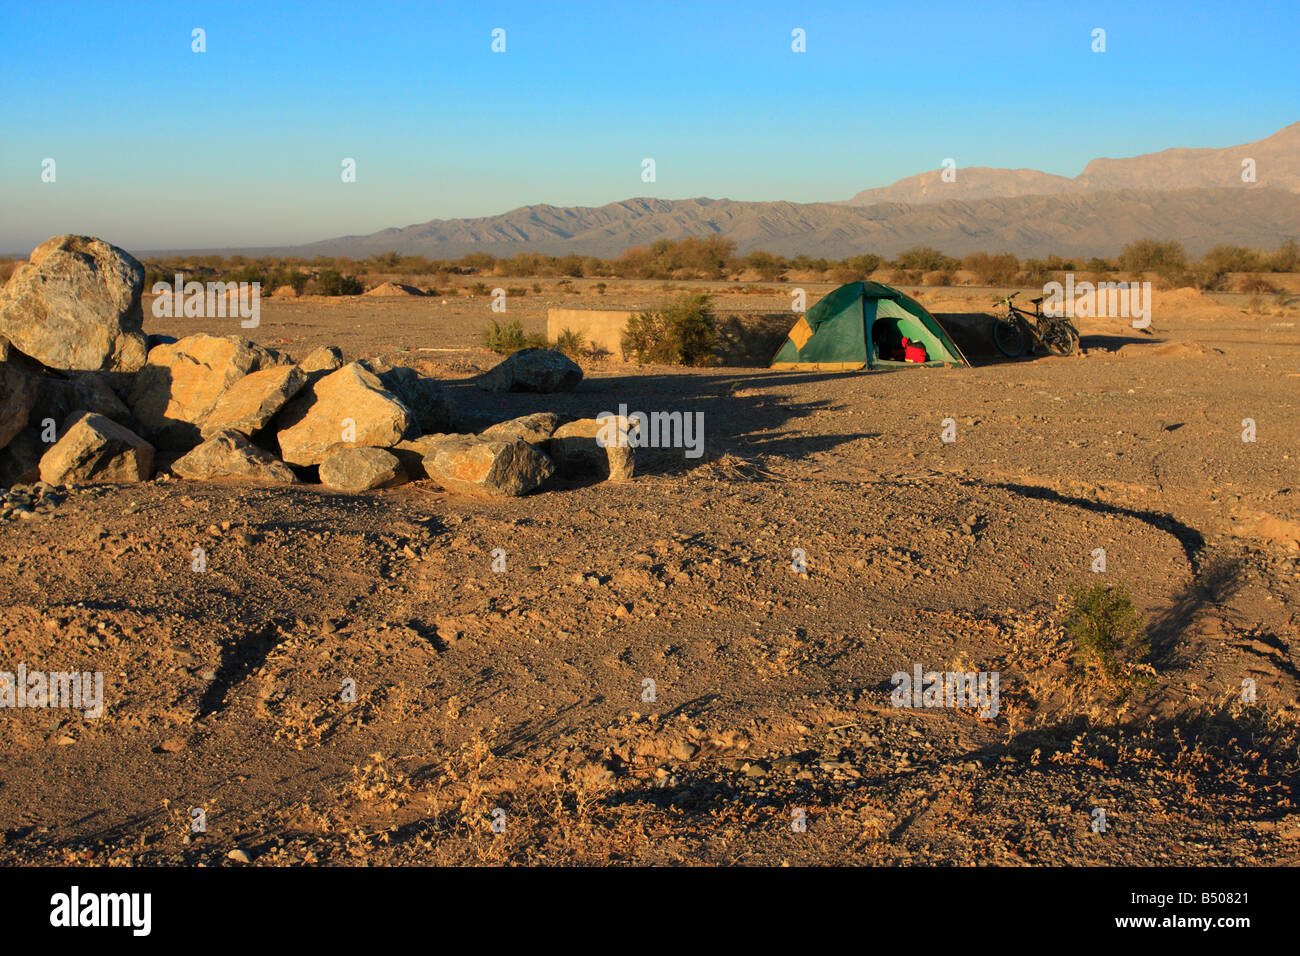 Wild camping in the Andes San Juan province Argentina - Stock Image